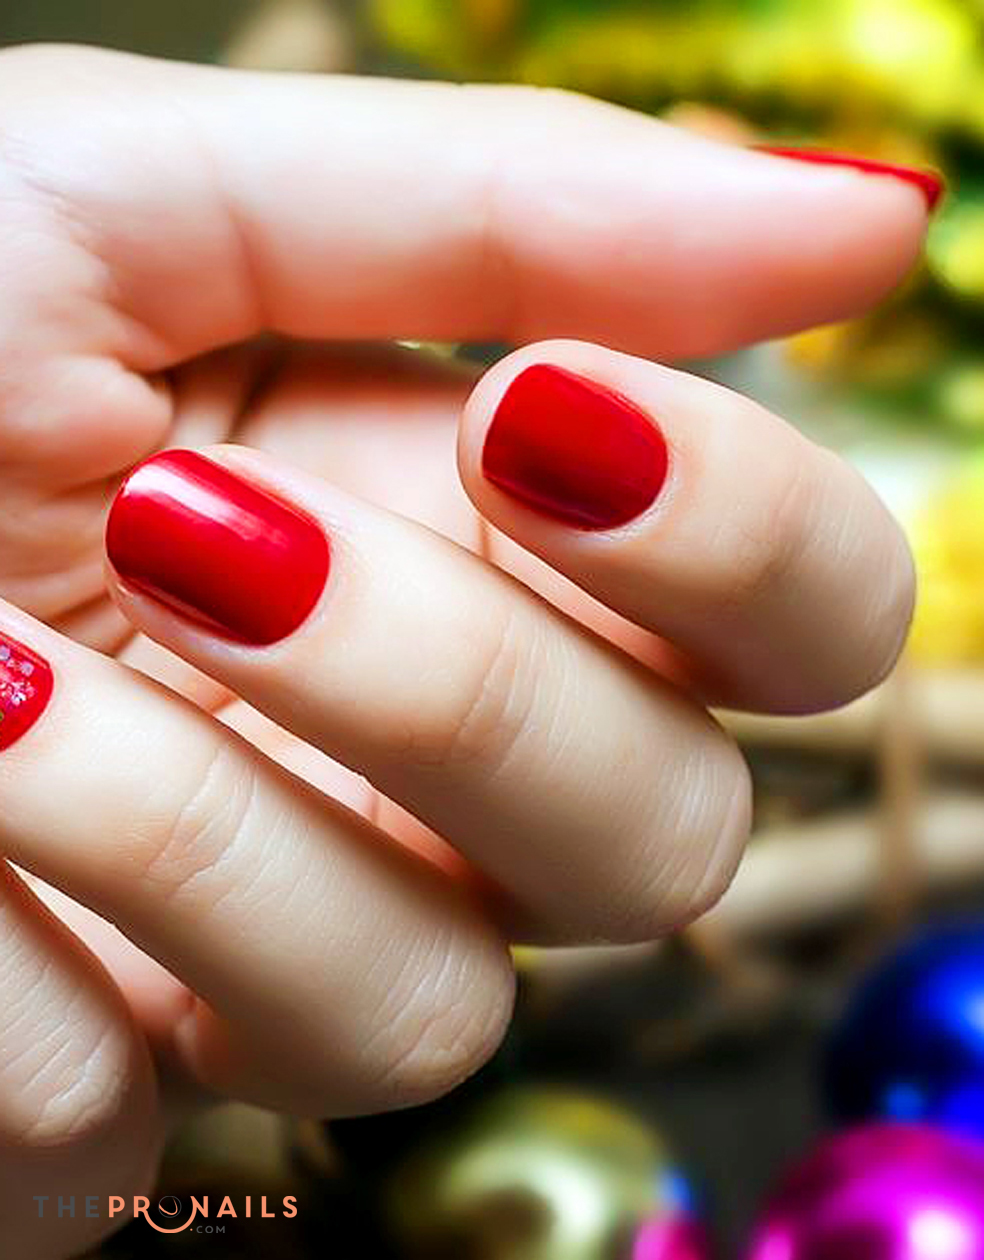 The Nail Arts Classic Manicure